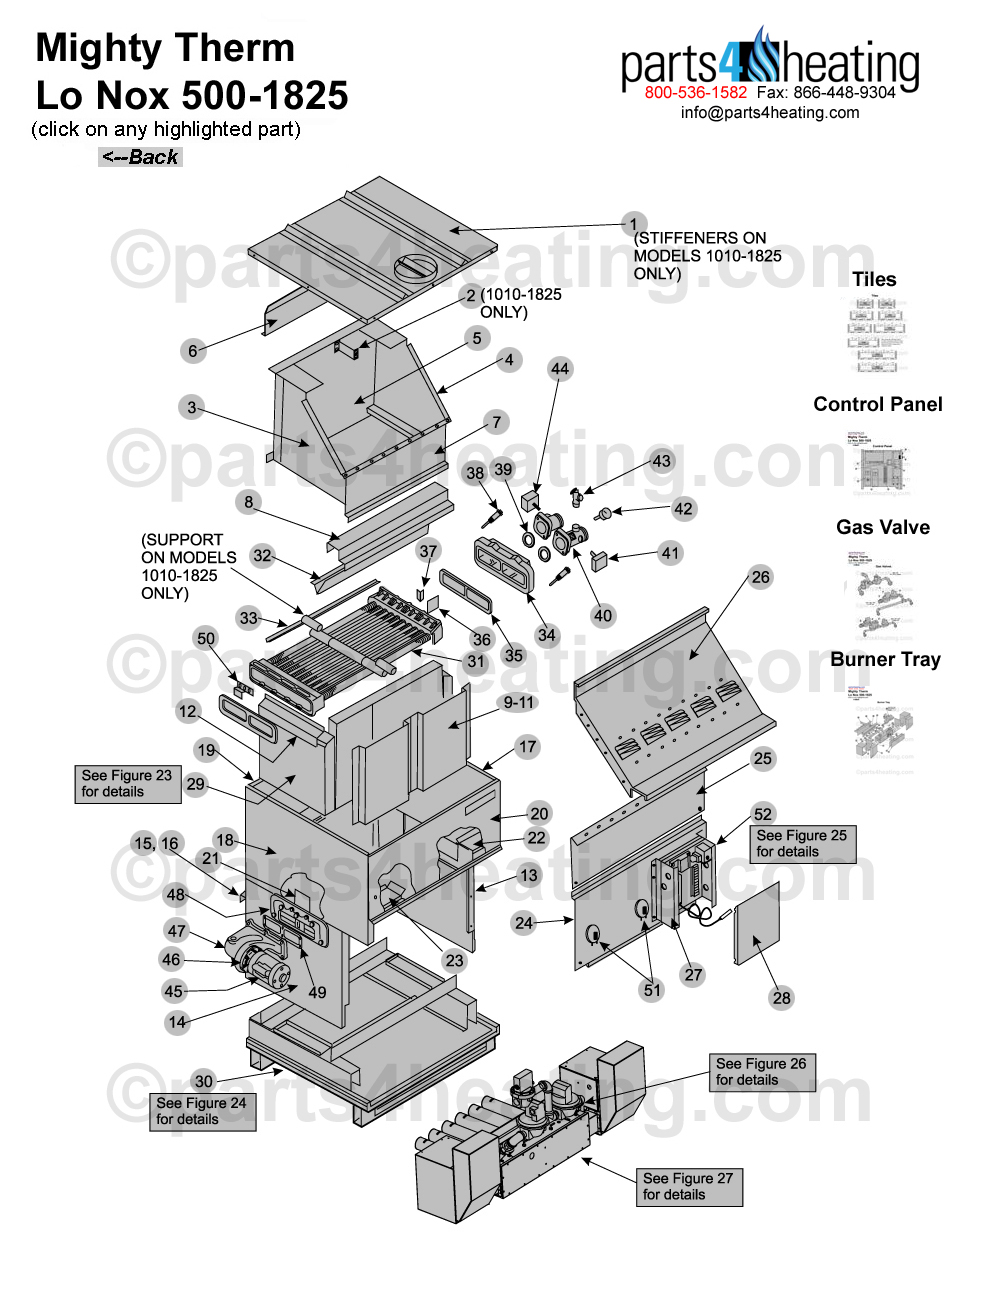 Wiring A Polaris Booster Pump furthermore Infinity Tub Wiring Diagram as well Discuss likewise Hayward Aqua Rite Wiring Diagram additionally Hayward De Filter Parts Diagram. on jandy wiring diagram